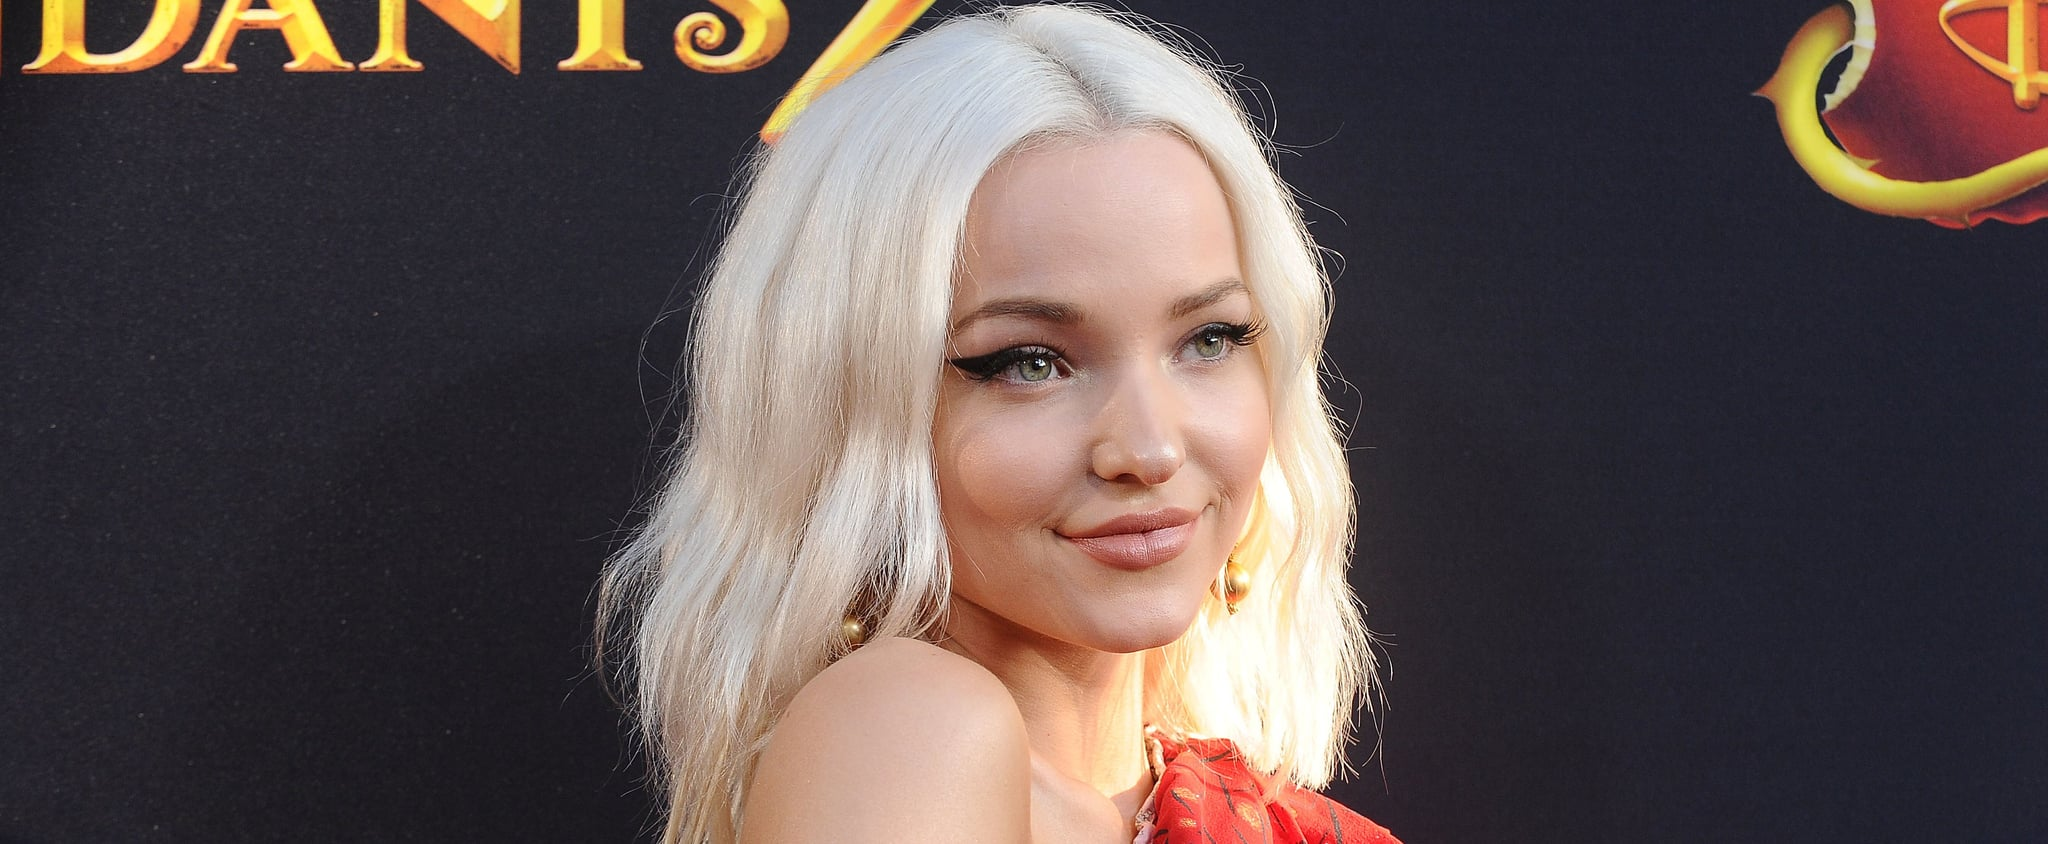 What Is Dove Cameron's Real Name?